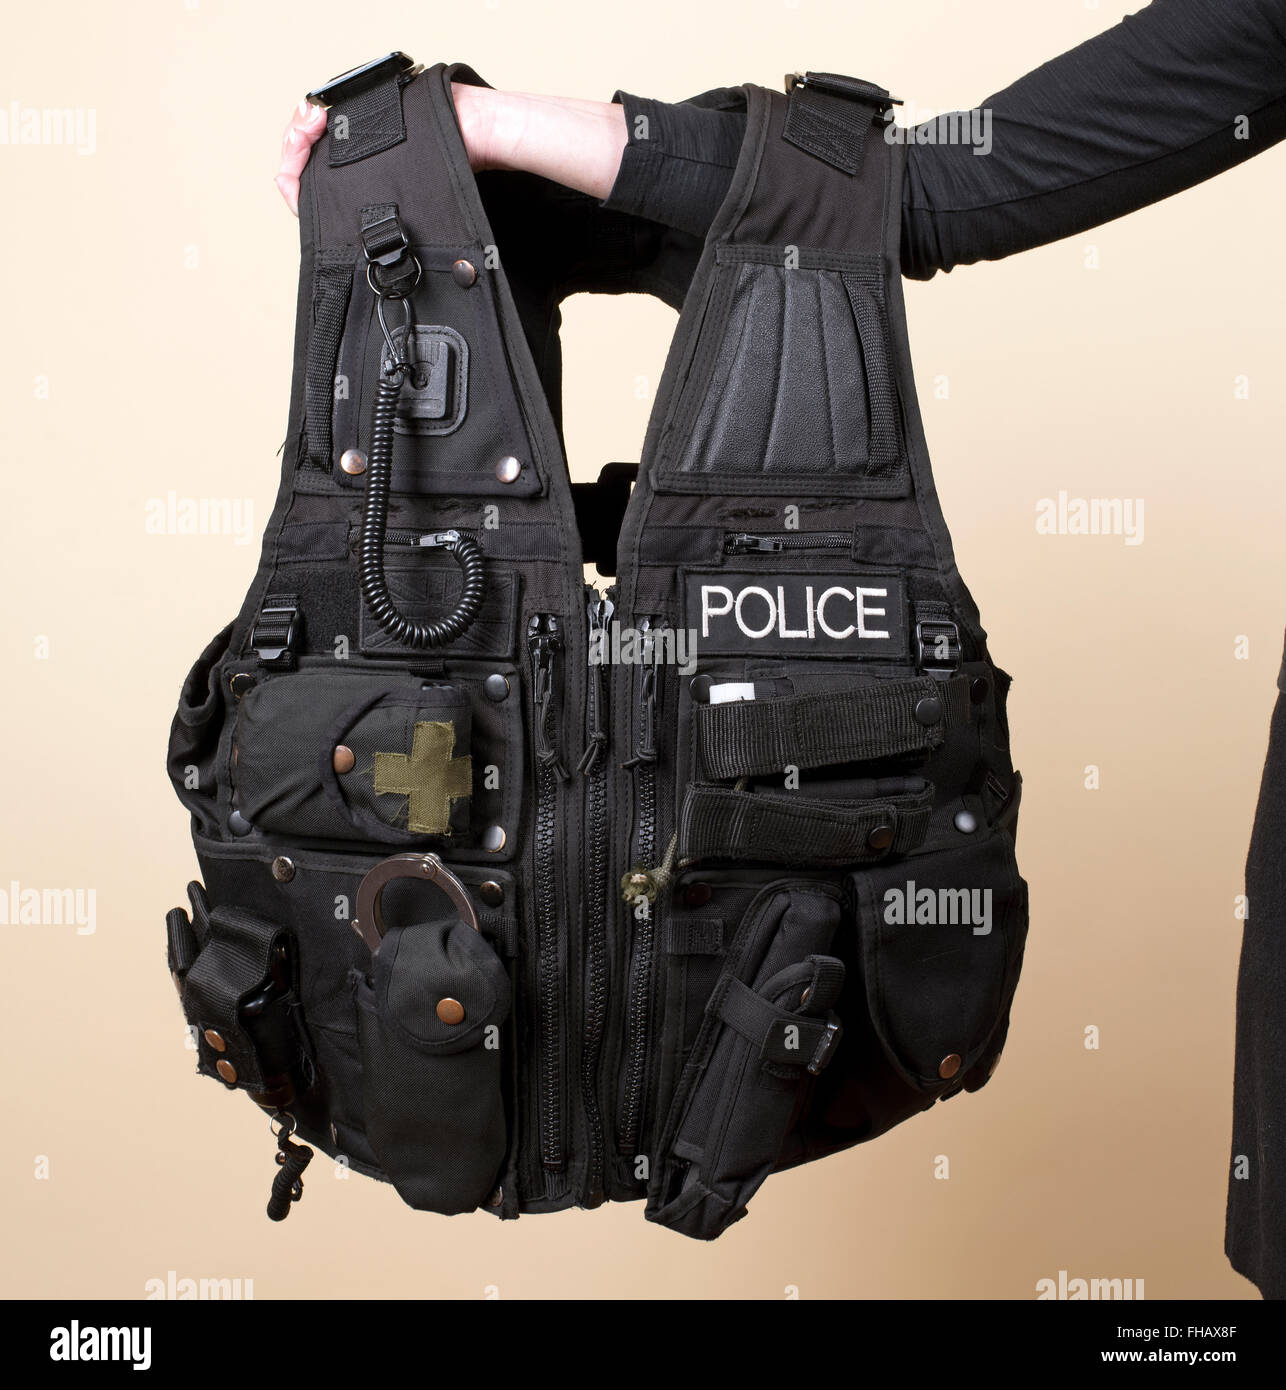 Police uniform a tactical vest - Stock Image